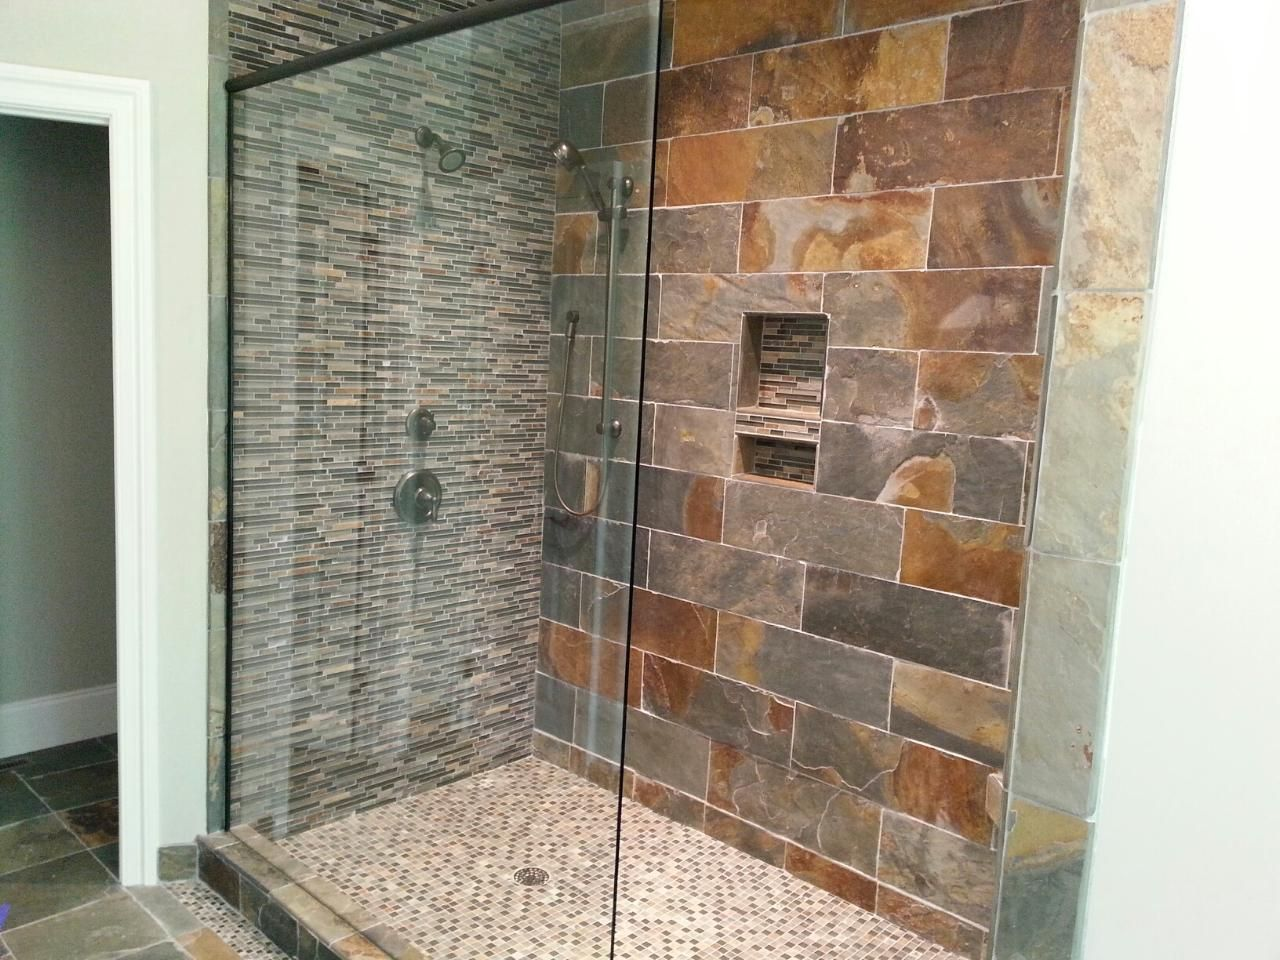 Rustic Shower Tile Design | Rustic Brick Bathroom Wall Tile Design ...